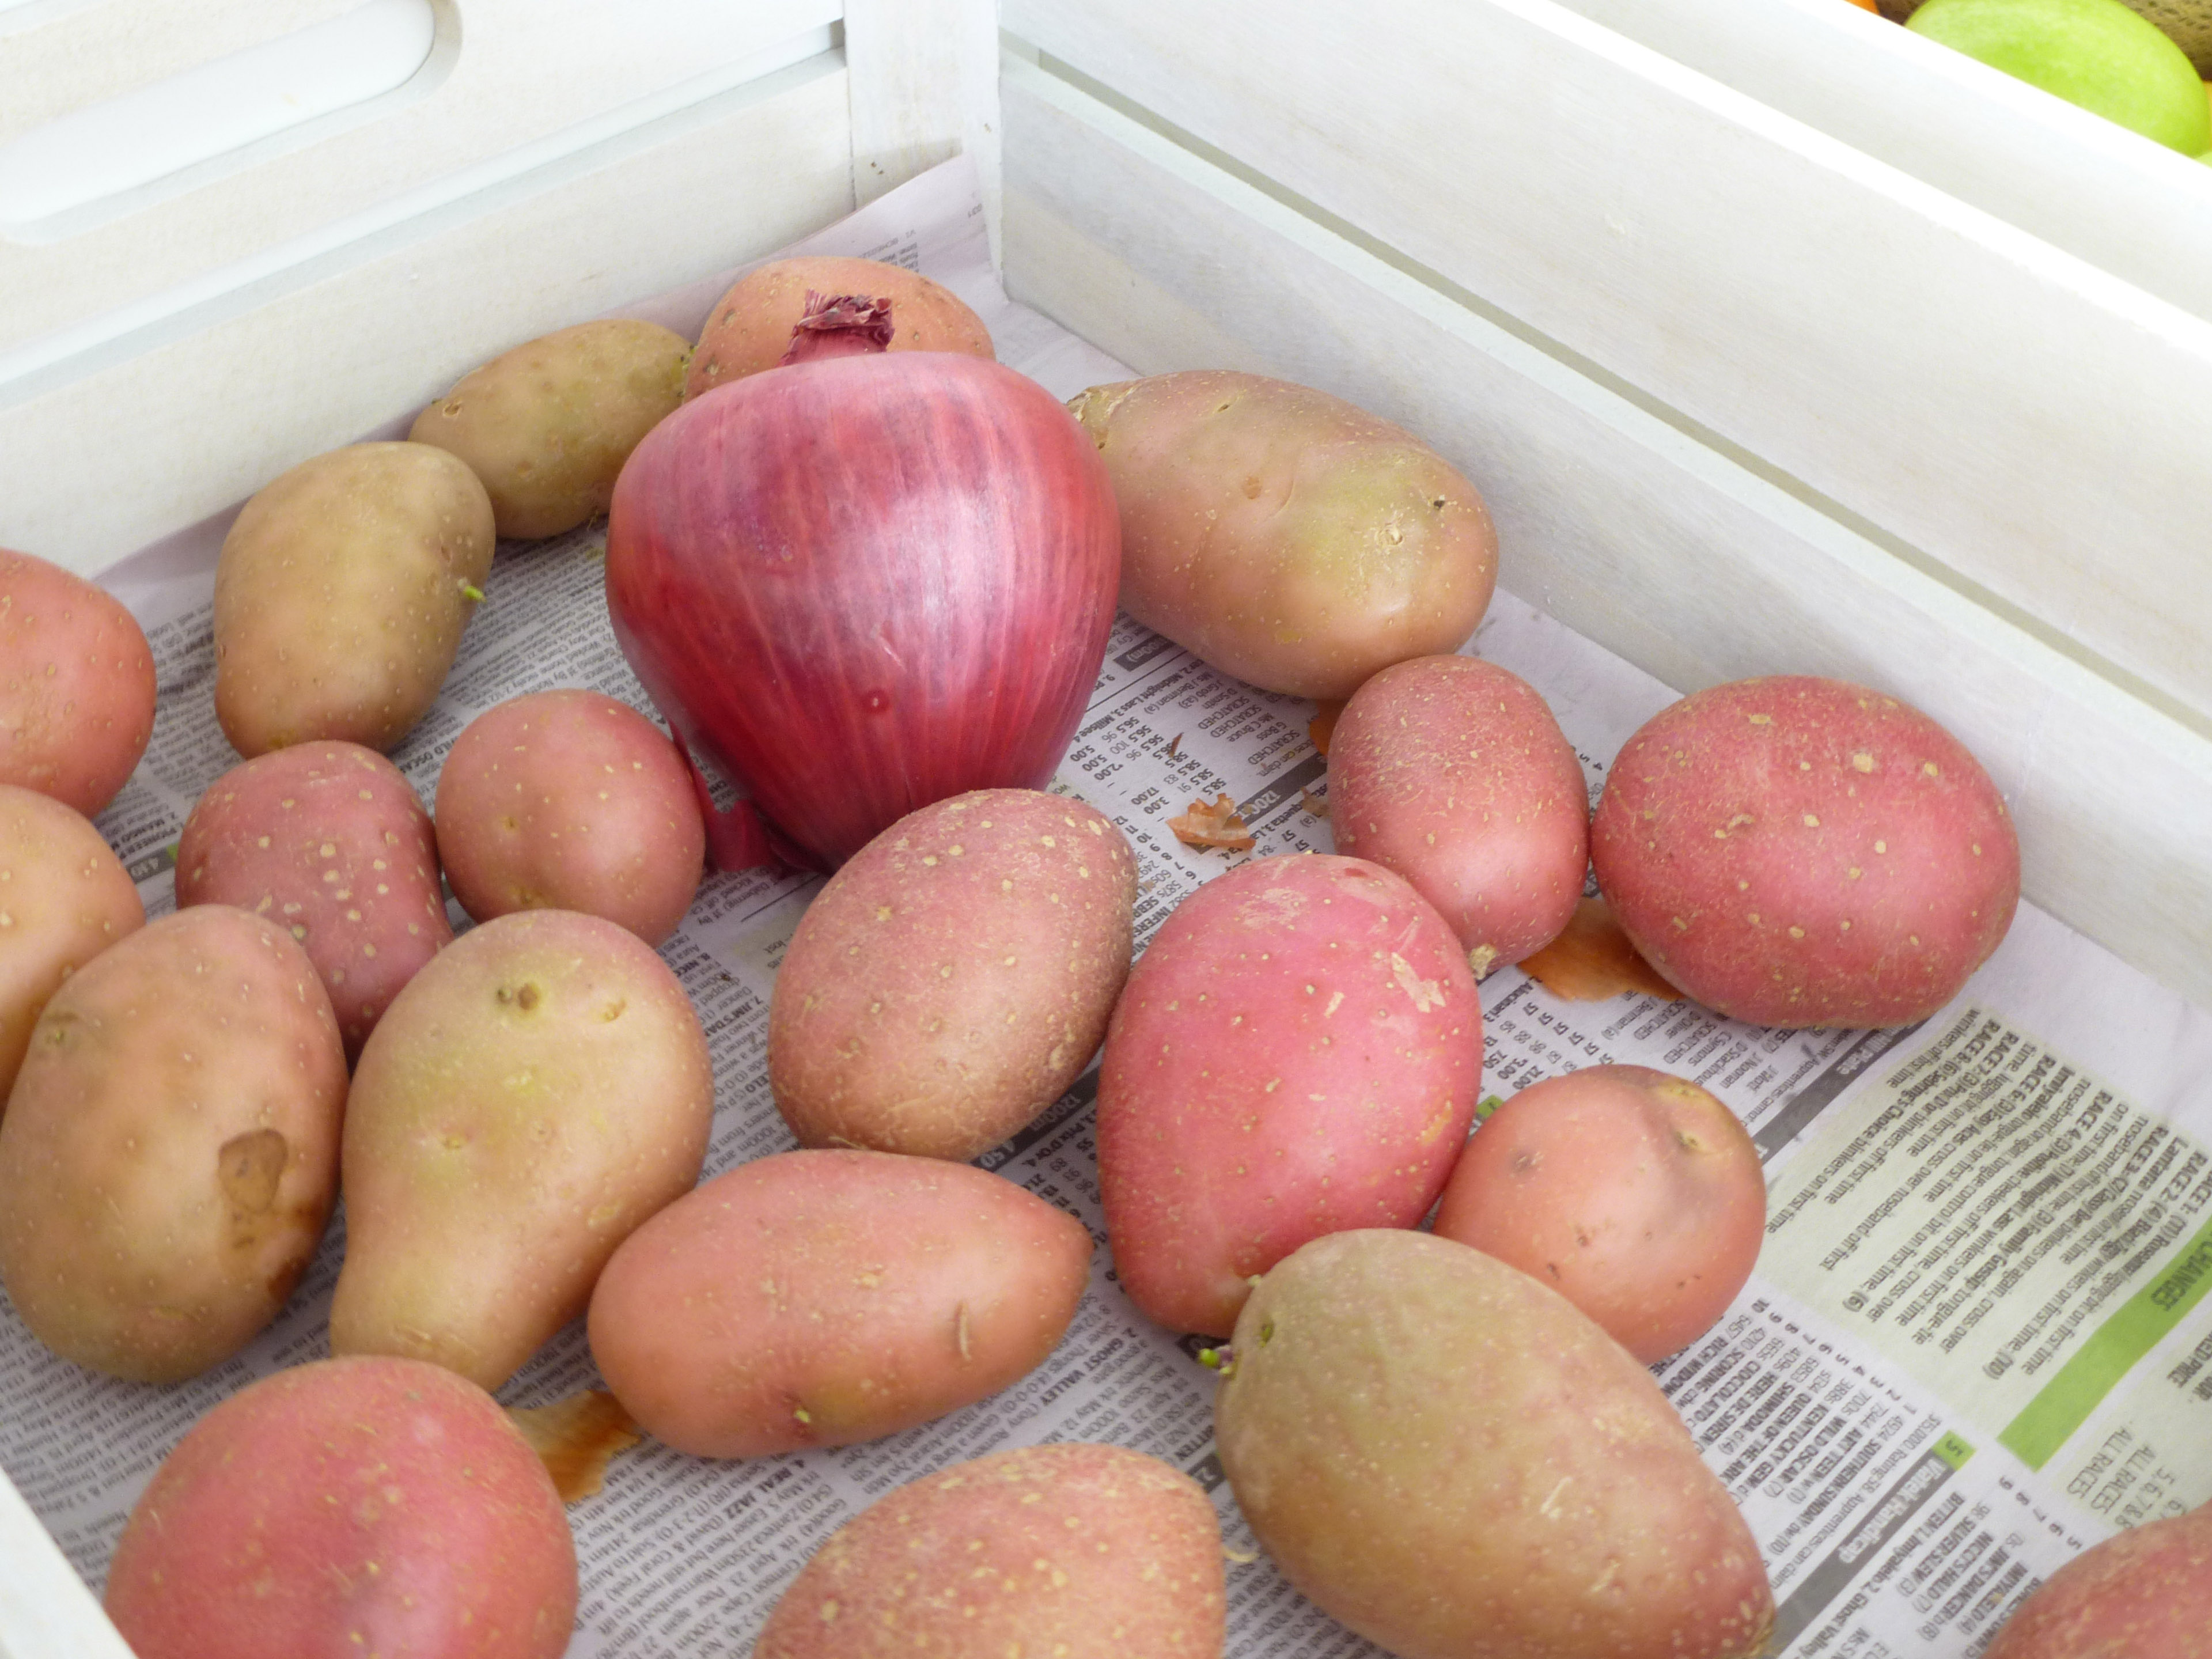 Dozen potatoes with one onion lying in wooden crate